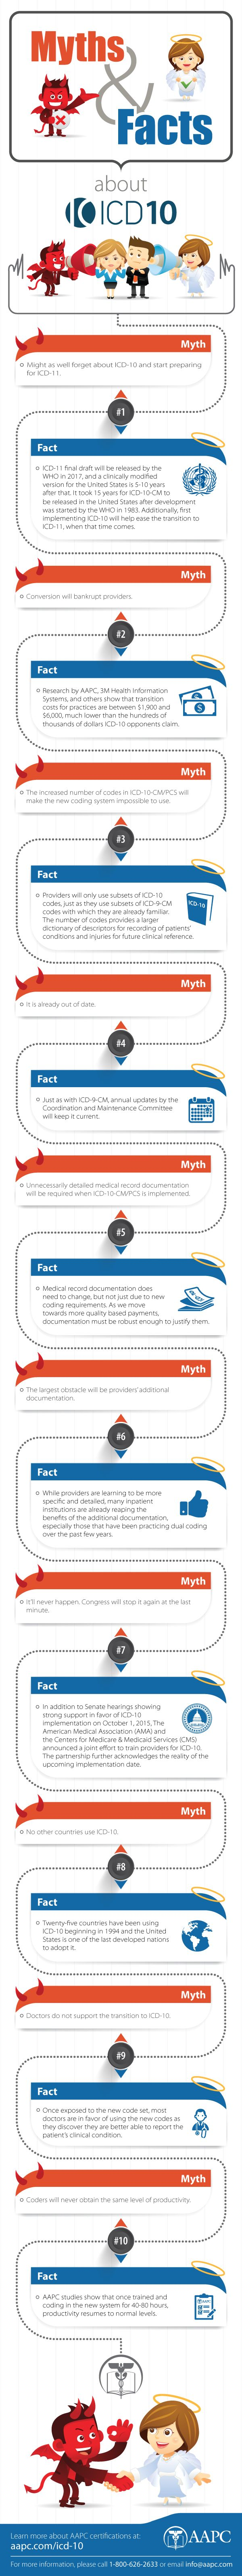 9 best aapc icd 10 resources images on pinterest medical coding view some of the myths and facts about icd 10 xflitez Choice Image